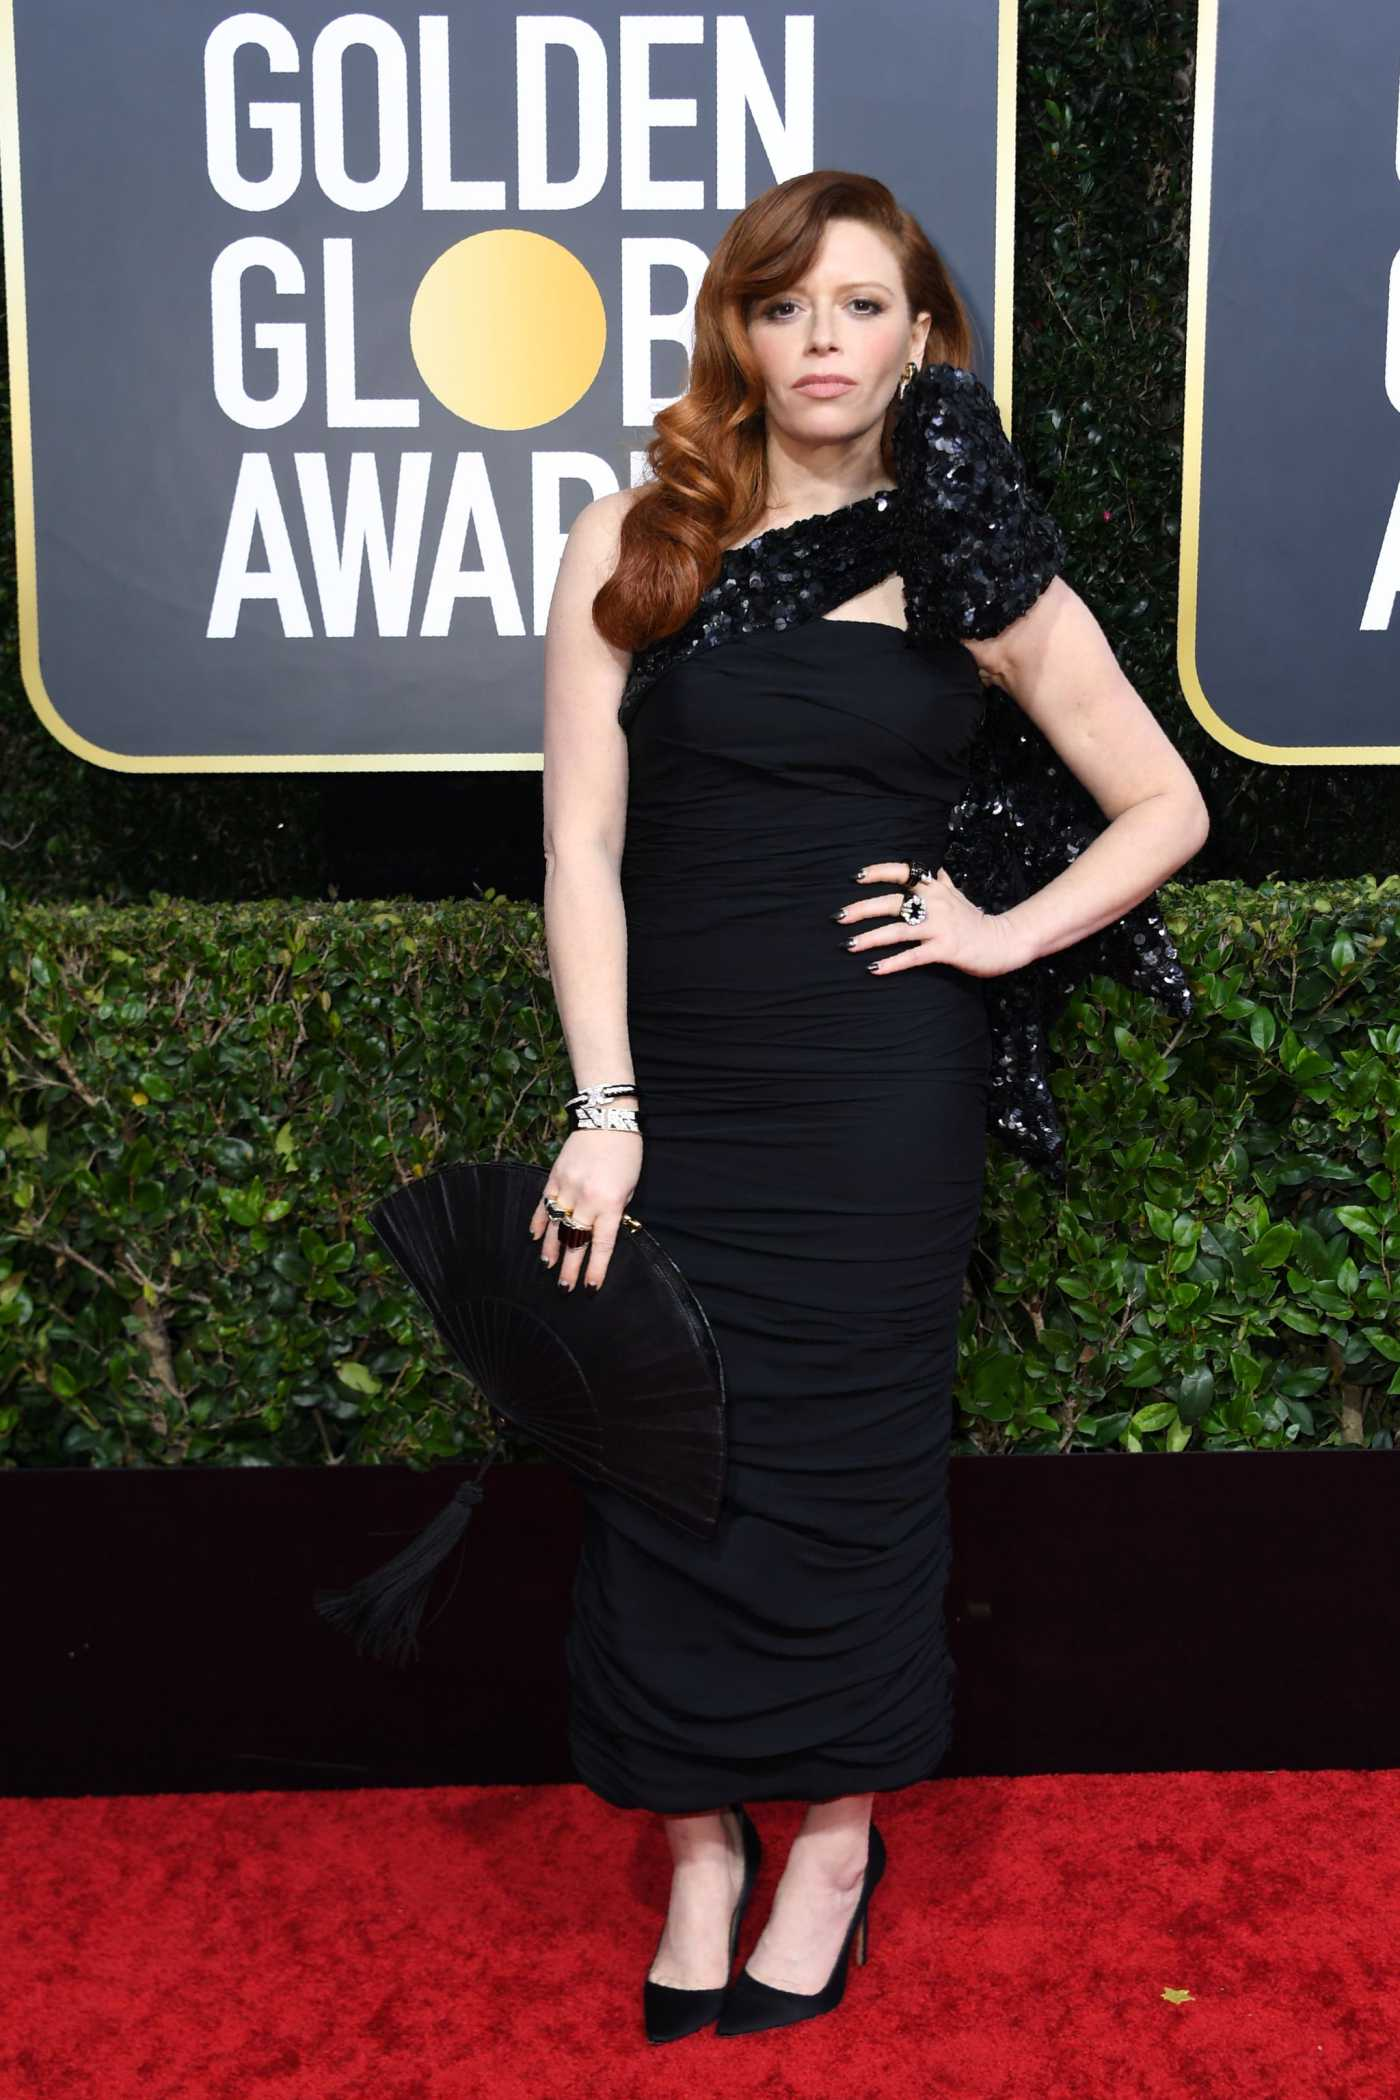 Natasha Lyonne Attends the 77th Annual Golden Globe Awards at the Beverly Hilton Hotel in Beverly Hills 01/05/2020